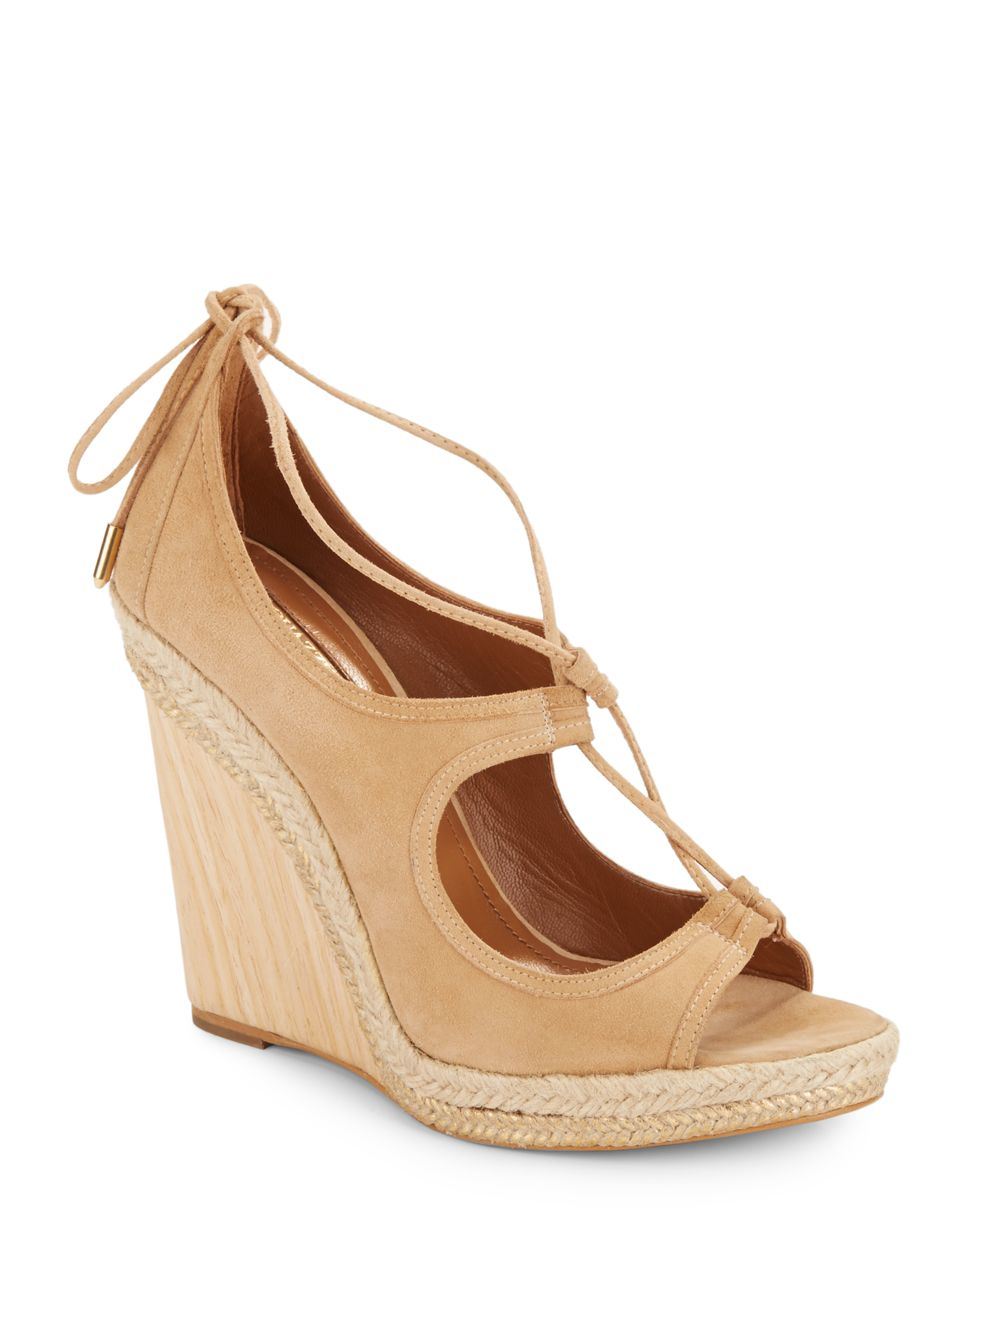 Aquazzura Christy Espadrille Wedges